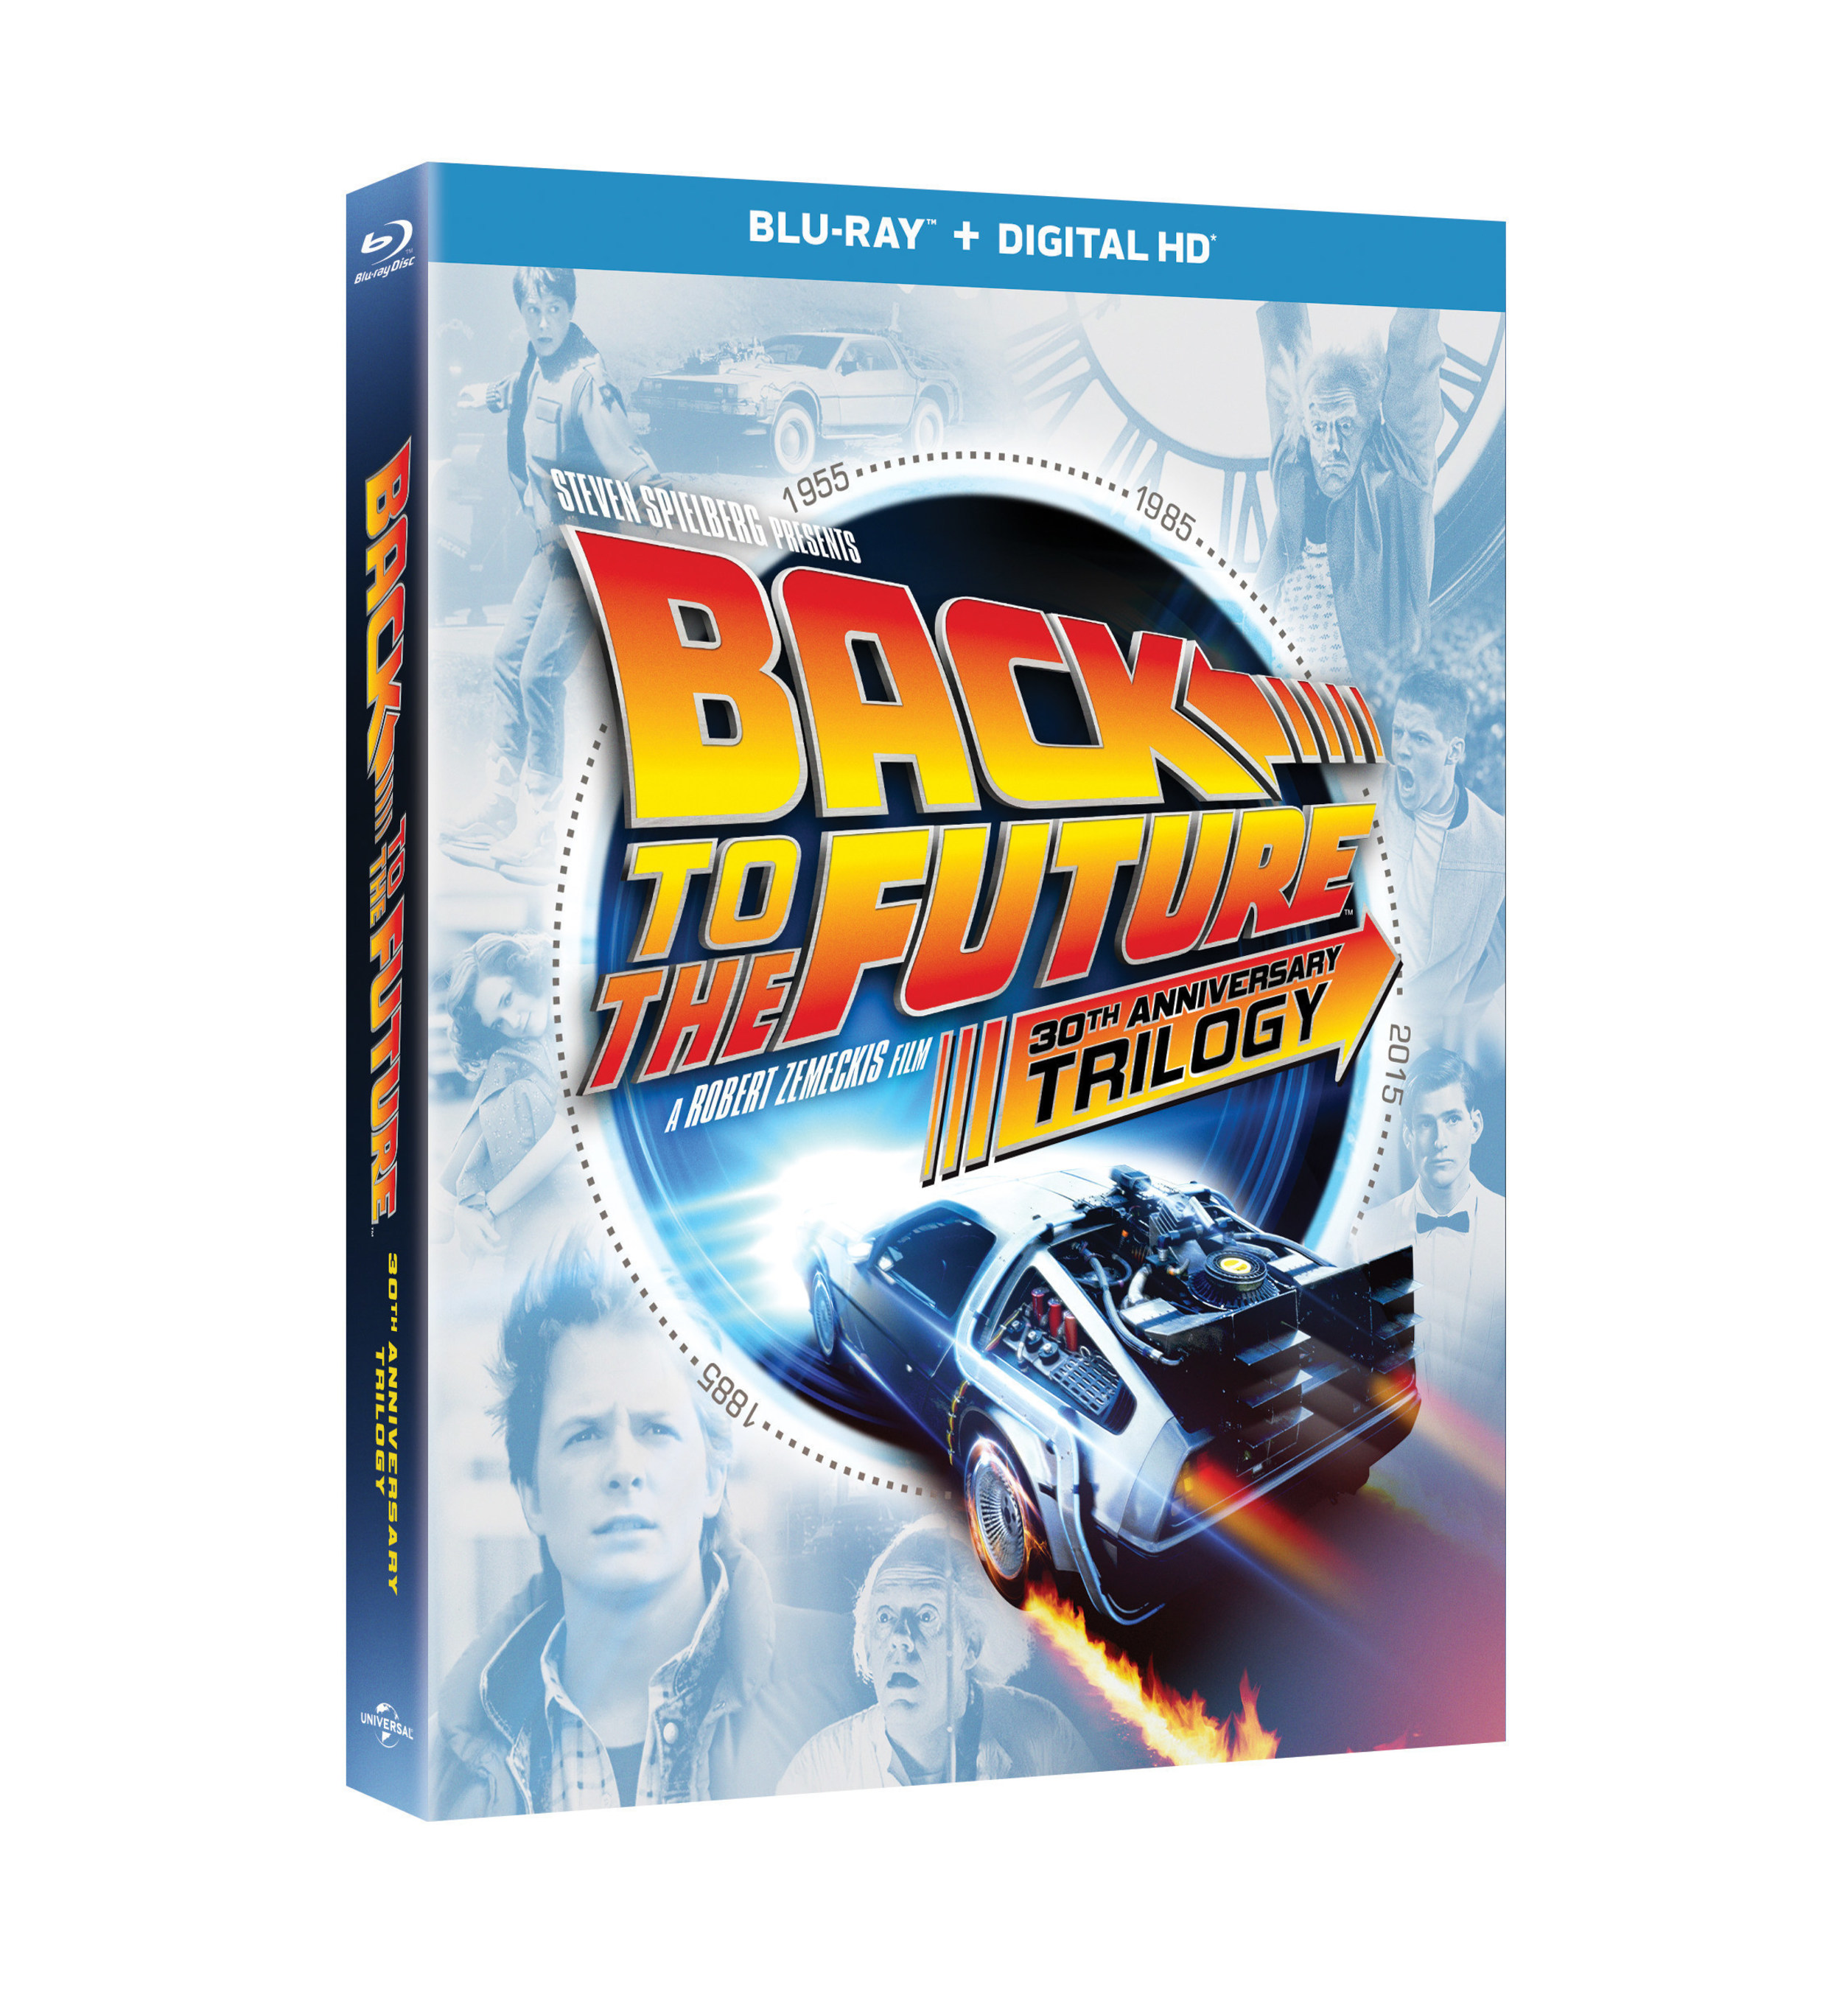 From Universal Pictures Home Entertainment: BACK TO THE FUTURE 30th ANNIVERSARY TRILOGY